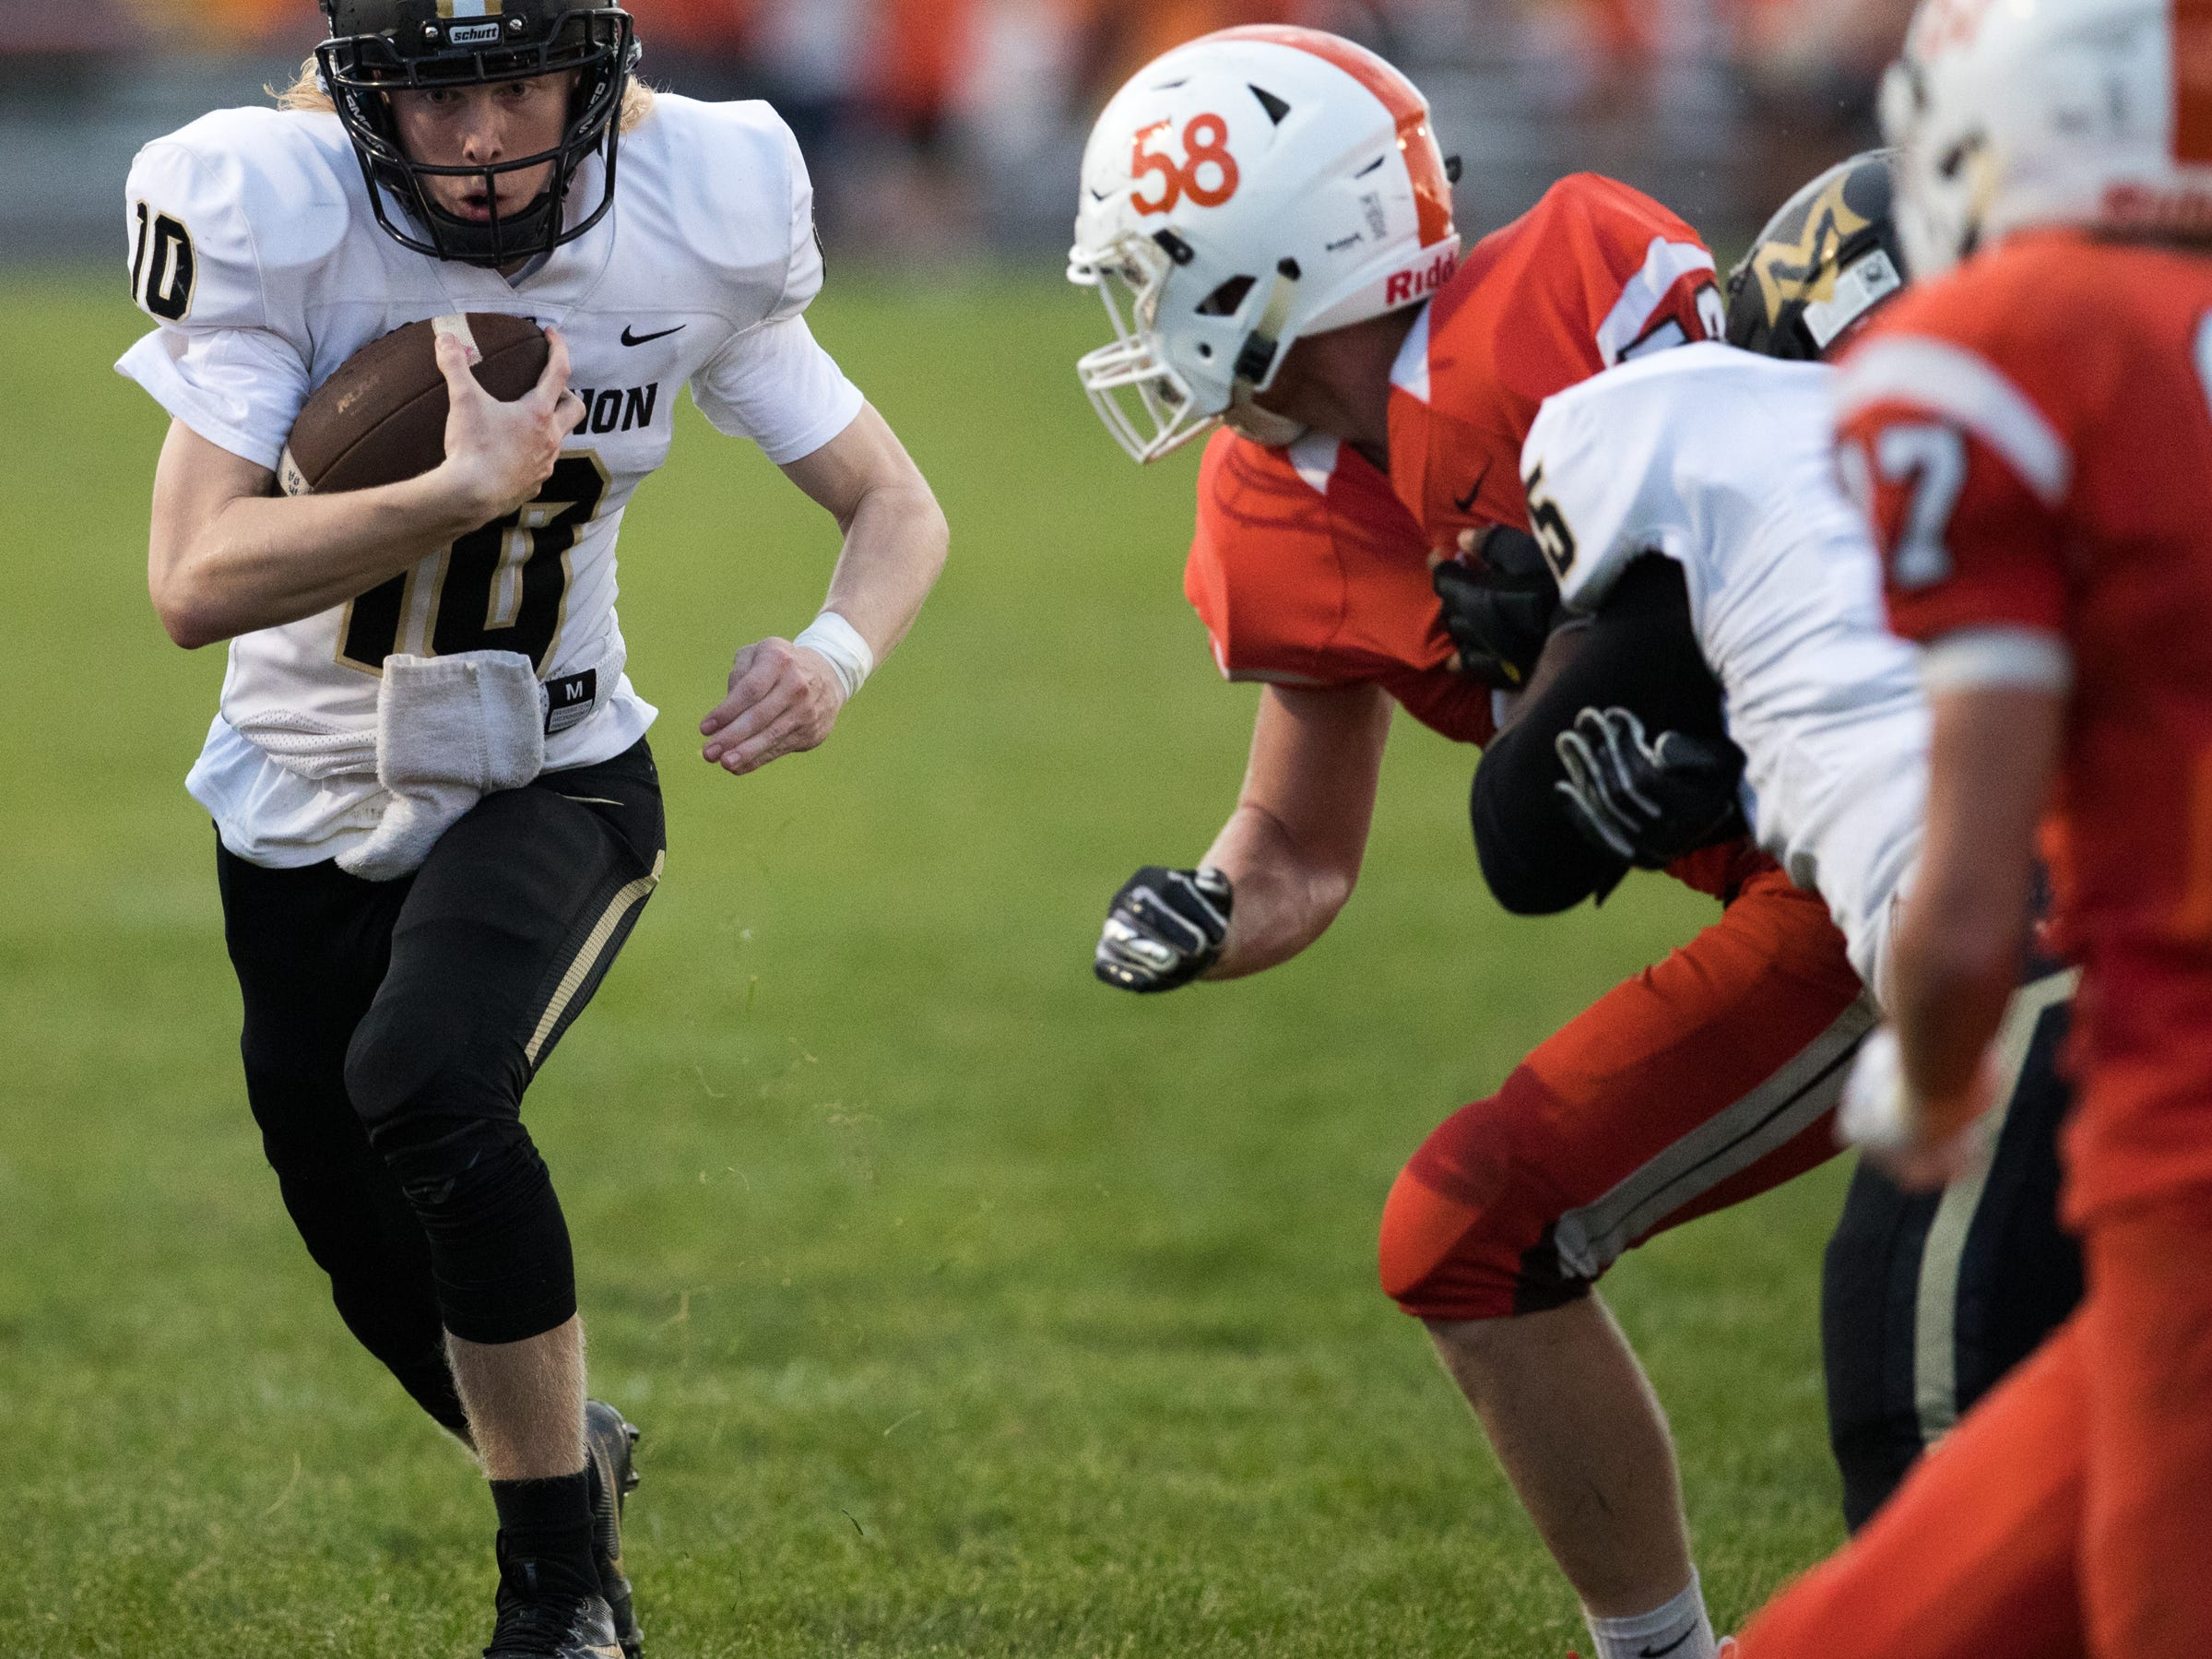 Austin Finke of Mount Vernon High School runs during action at Hamilton Heights High School football, won by MVHS, 43-14, Arcadia, Friday, Aug. 17, 2018. This game is the first for HHHS head coach Jon Kirschner, who faced his father Mike Kirschner, a veteran and champion coach in his first season at MVHS.